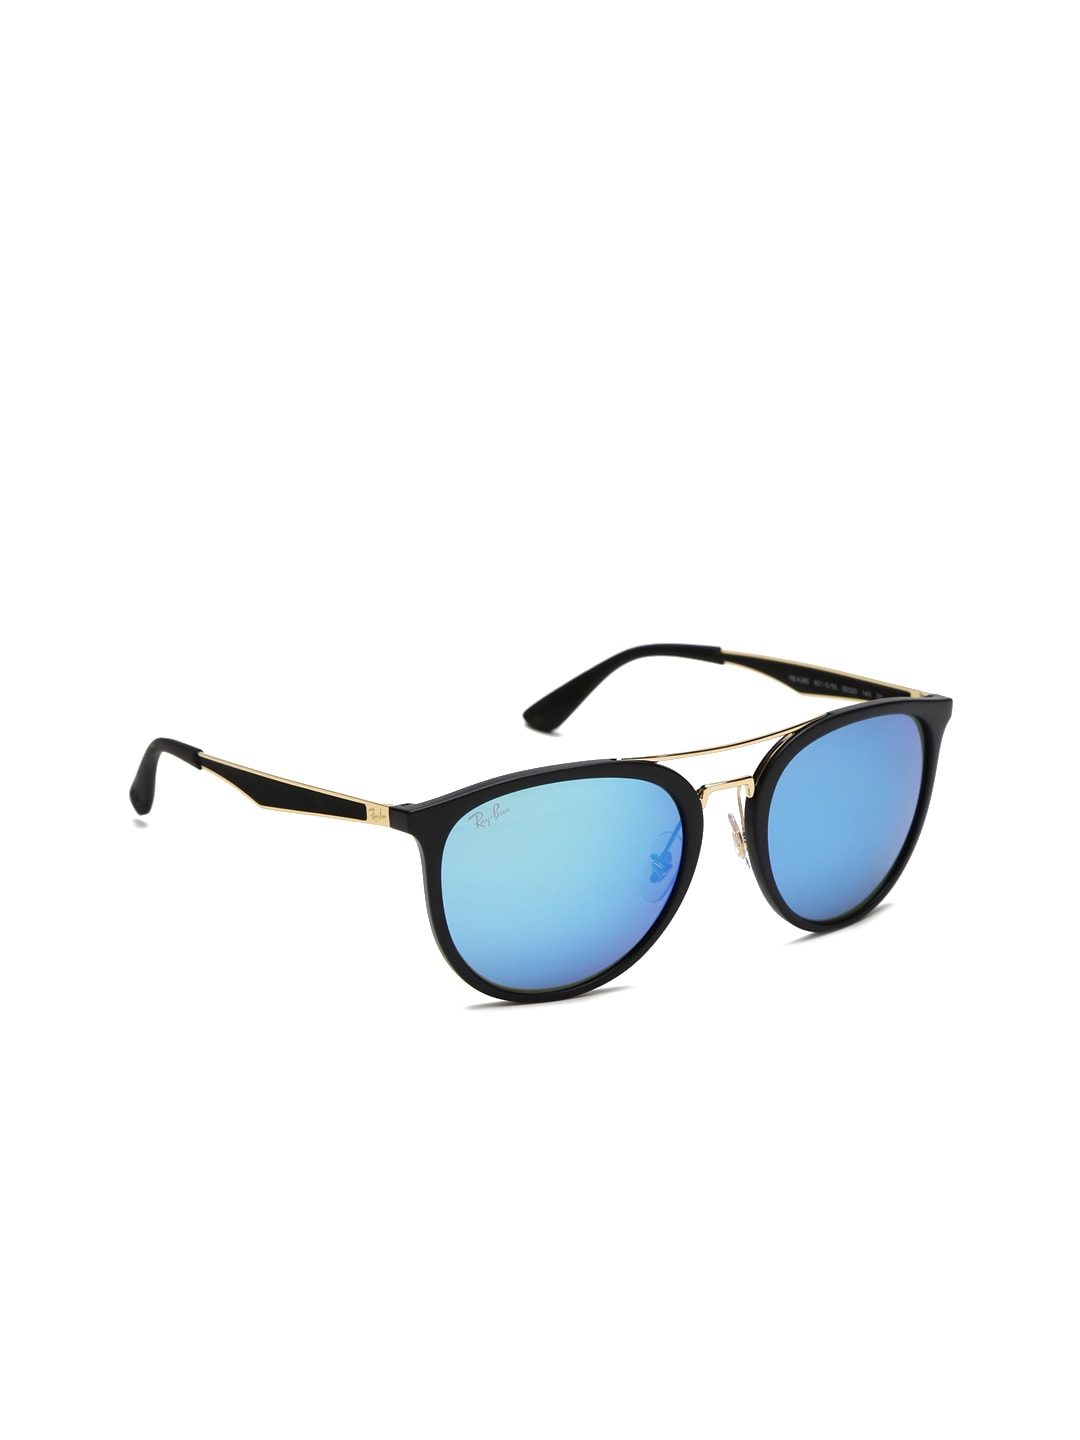 2c8f0f2a97dfb Ray Ban - Buy Ray Ban Sunglasses   Frames Online In India